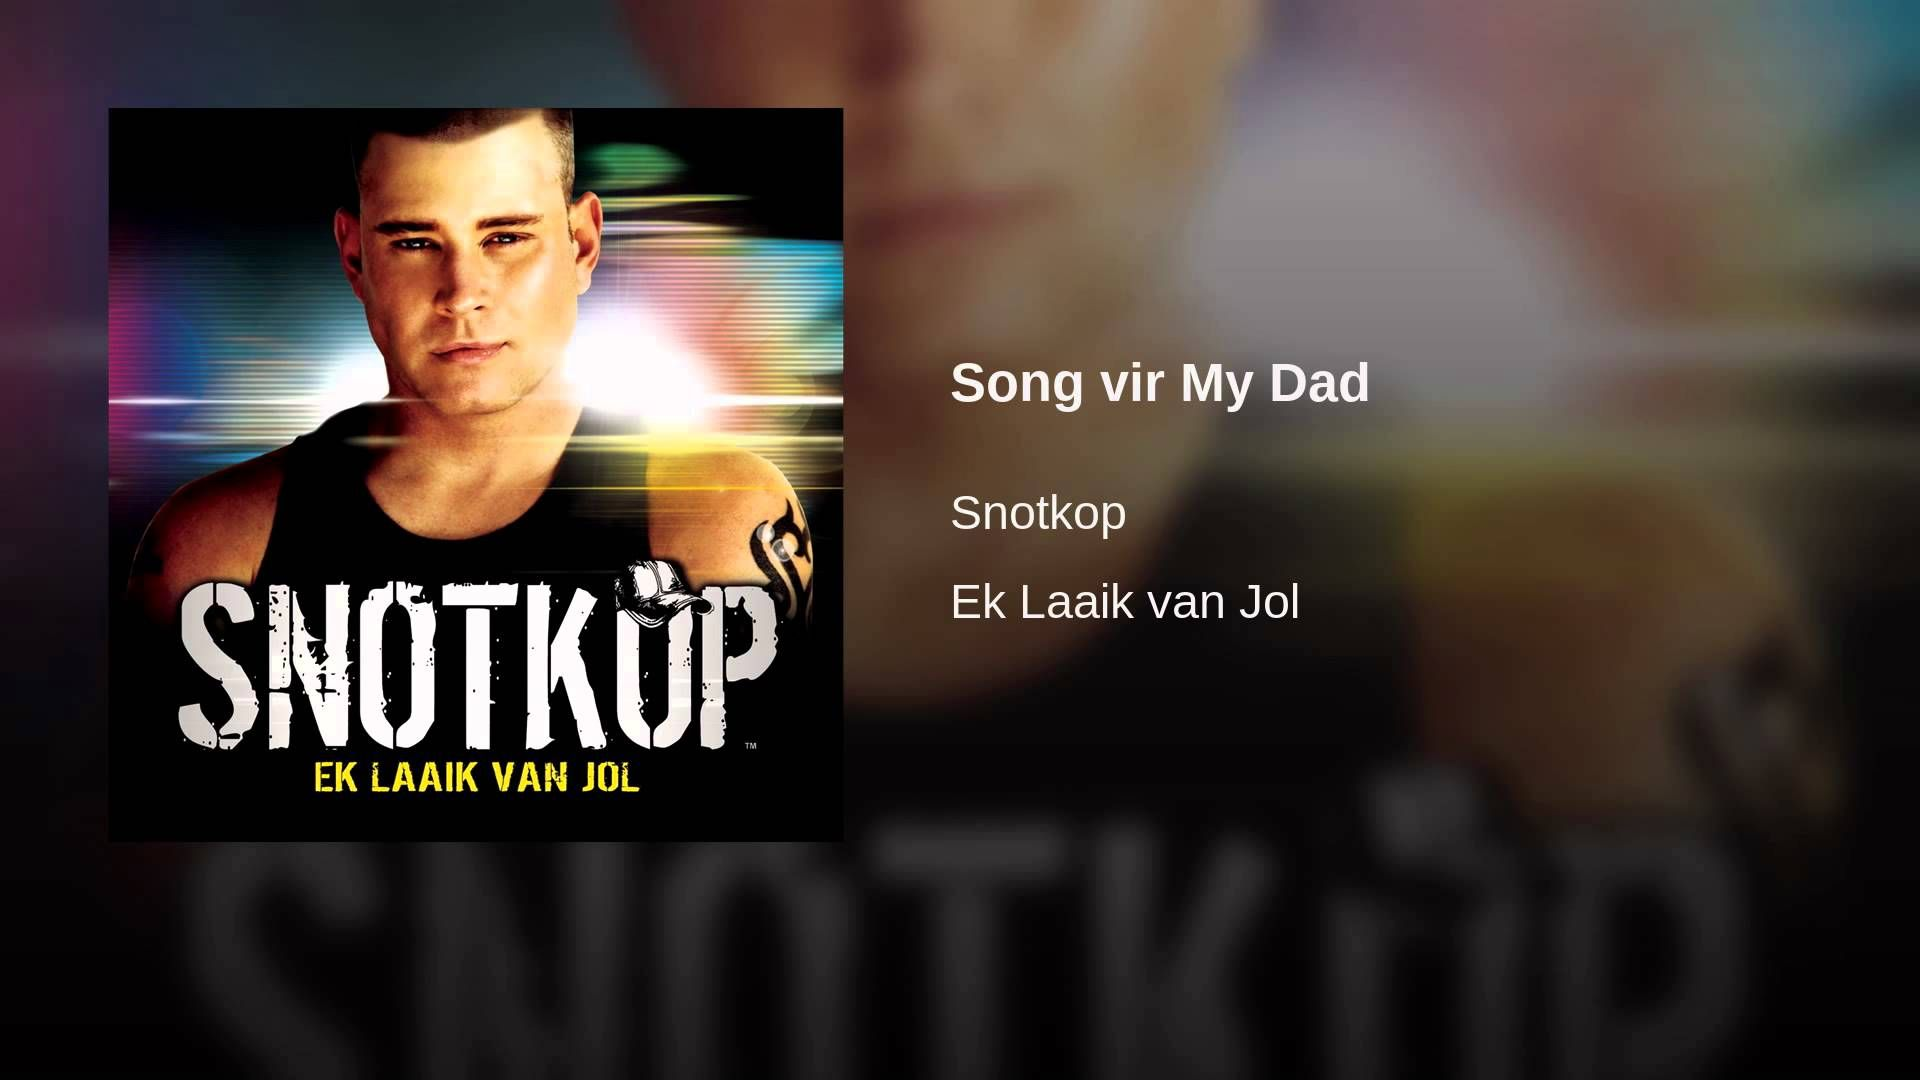 song vir my dad snotkop